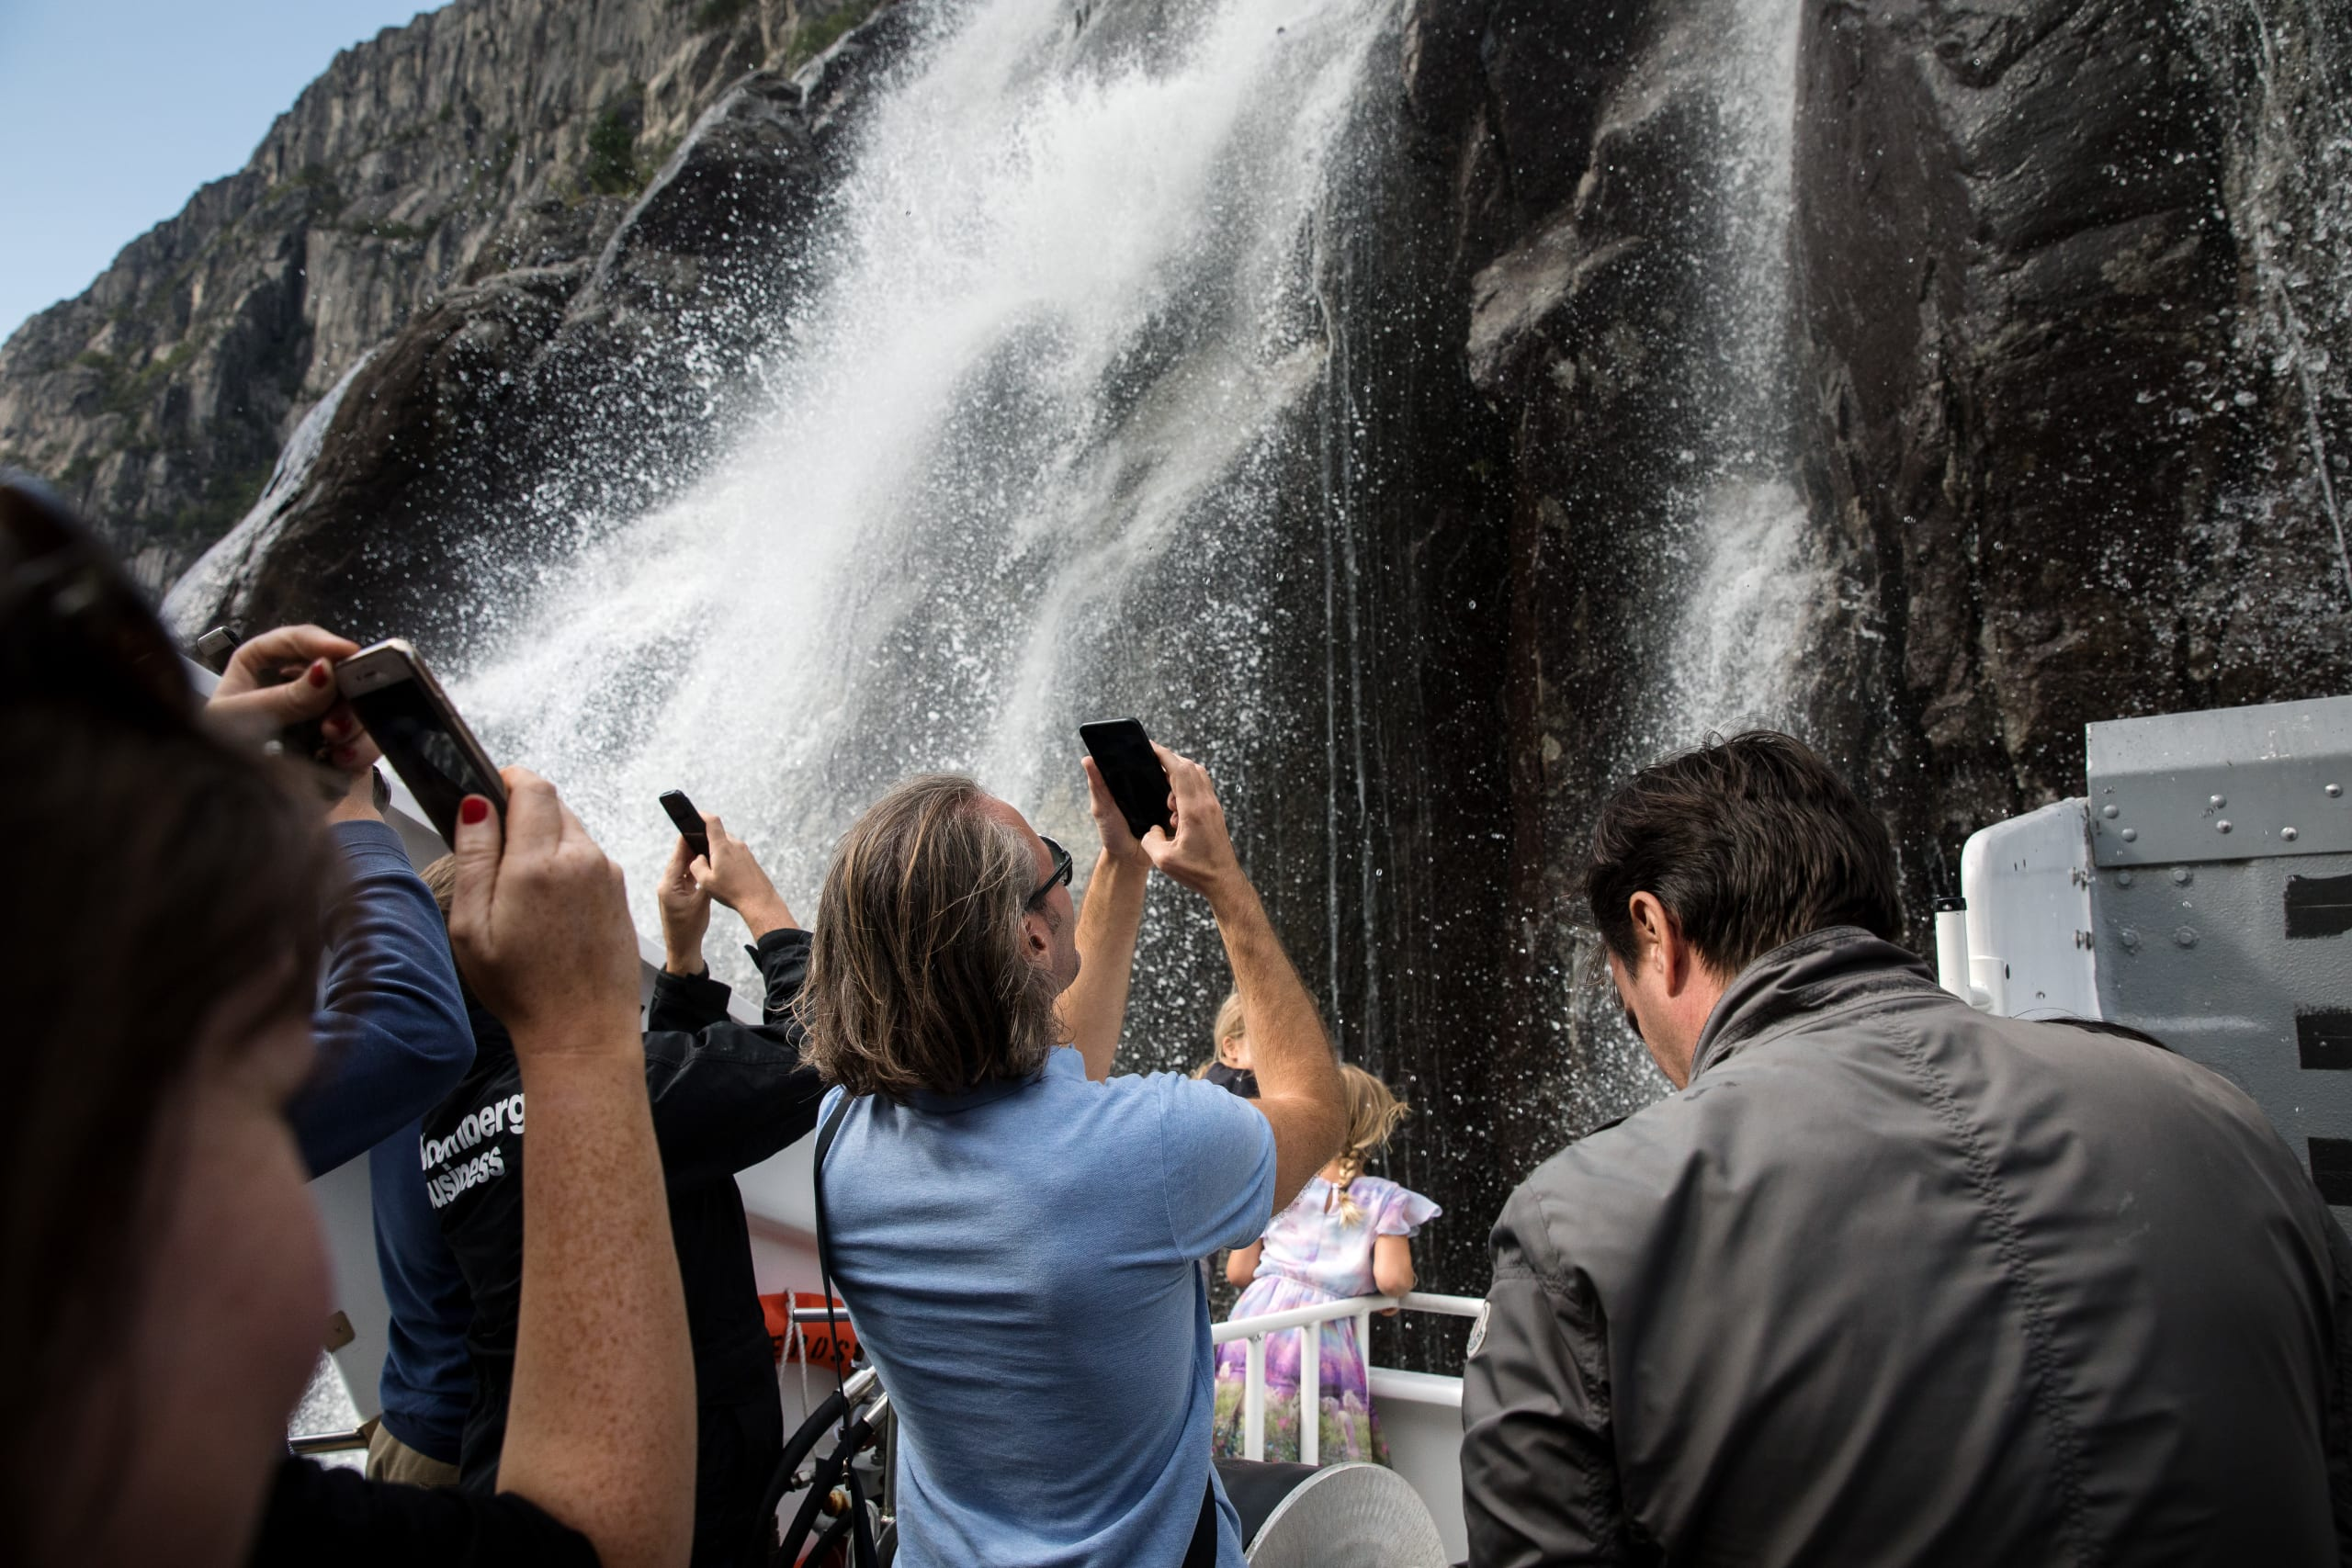 People photographing the Hengjane falls